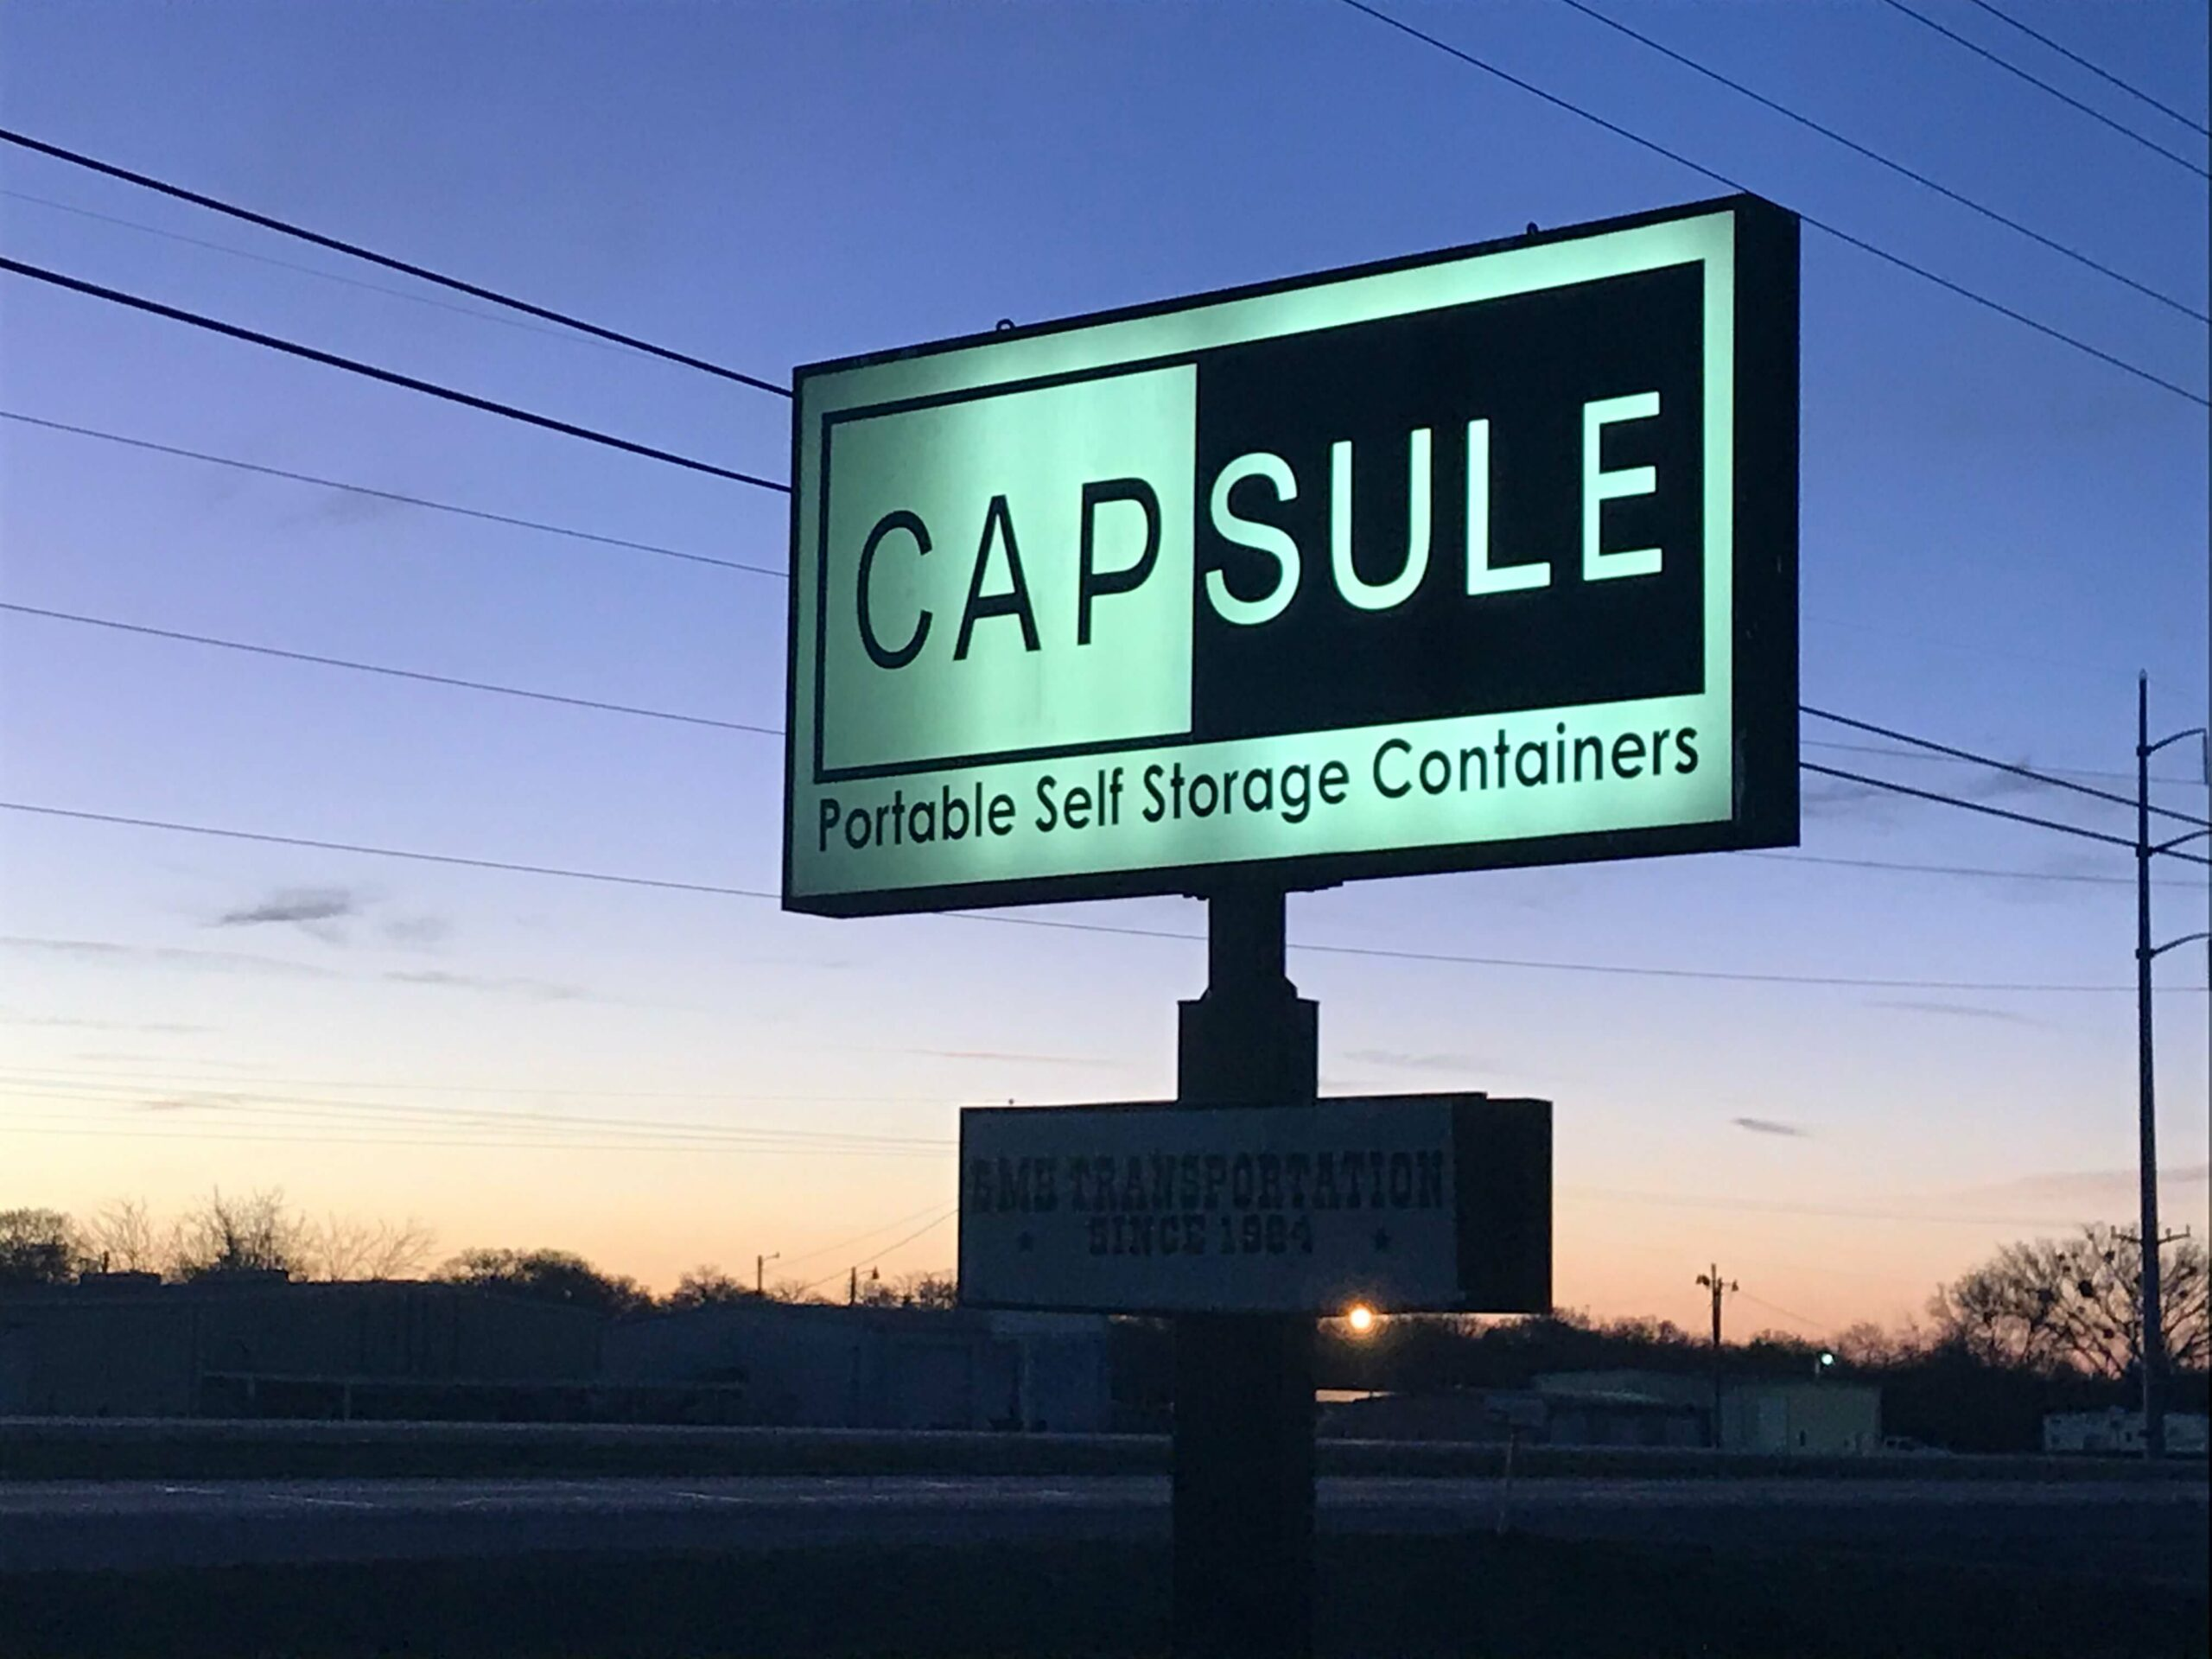 Capsule sign at sunrise